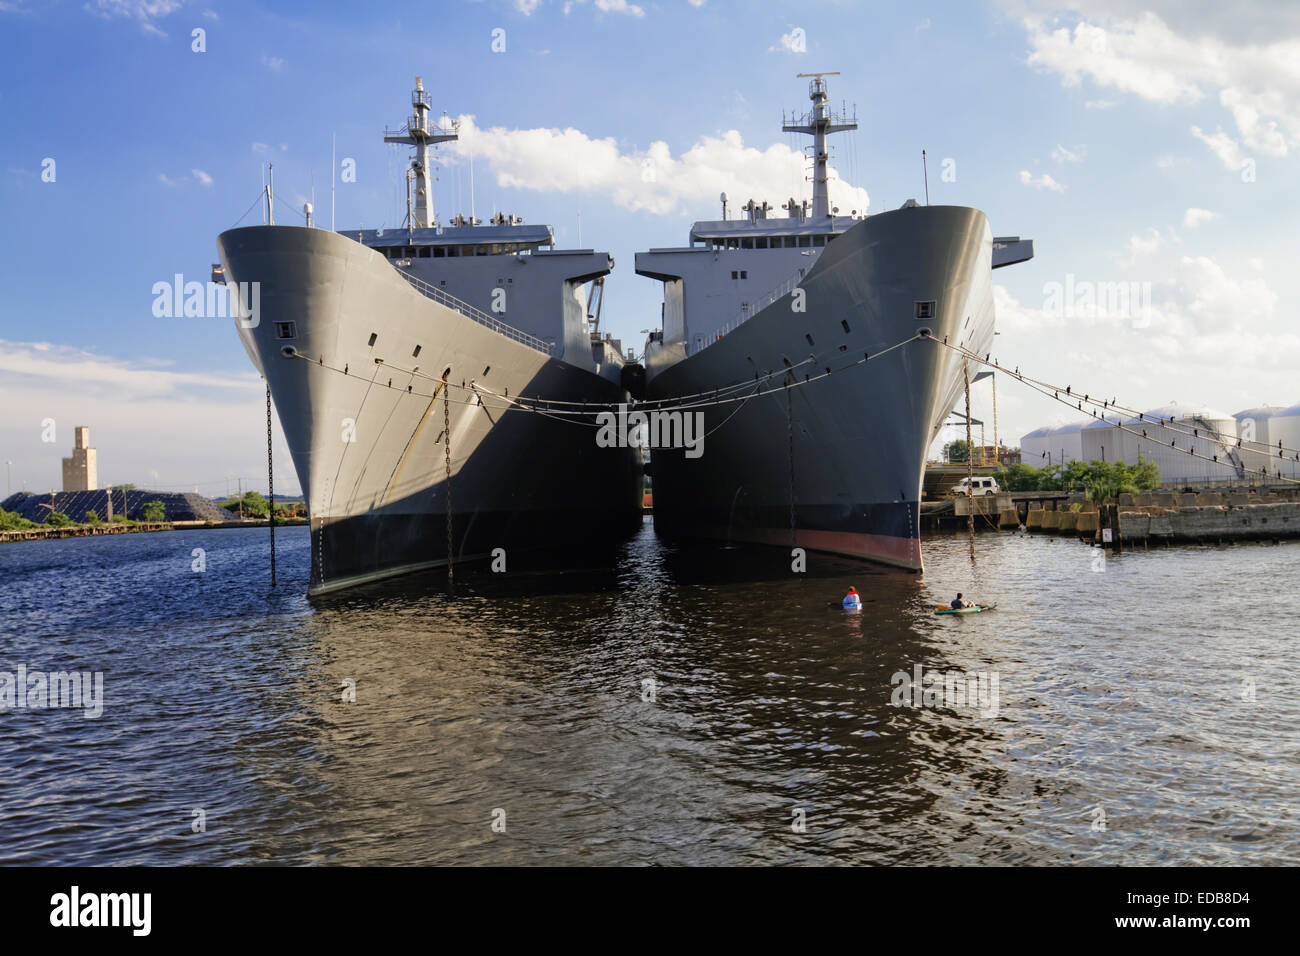 Frontal View of Two Algol Class Military Cargo Ships Anchored in Baltimore Harbor, Maryland - Stock Image